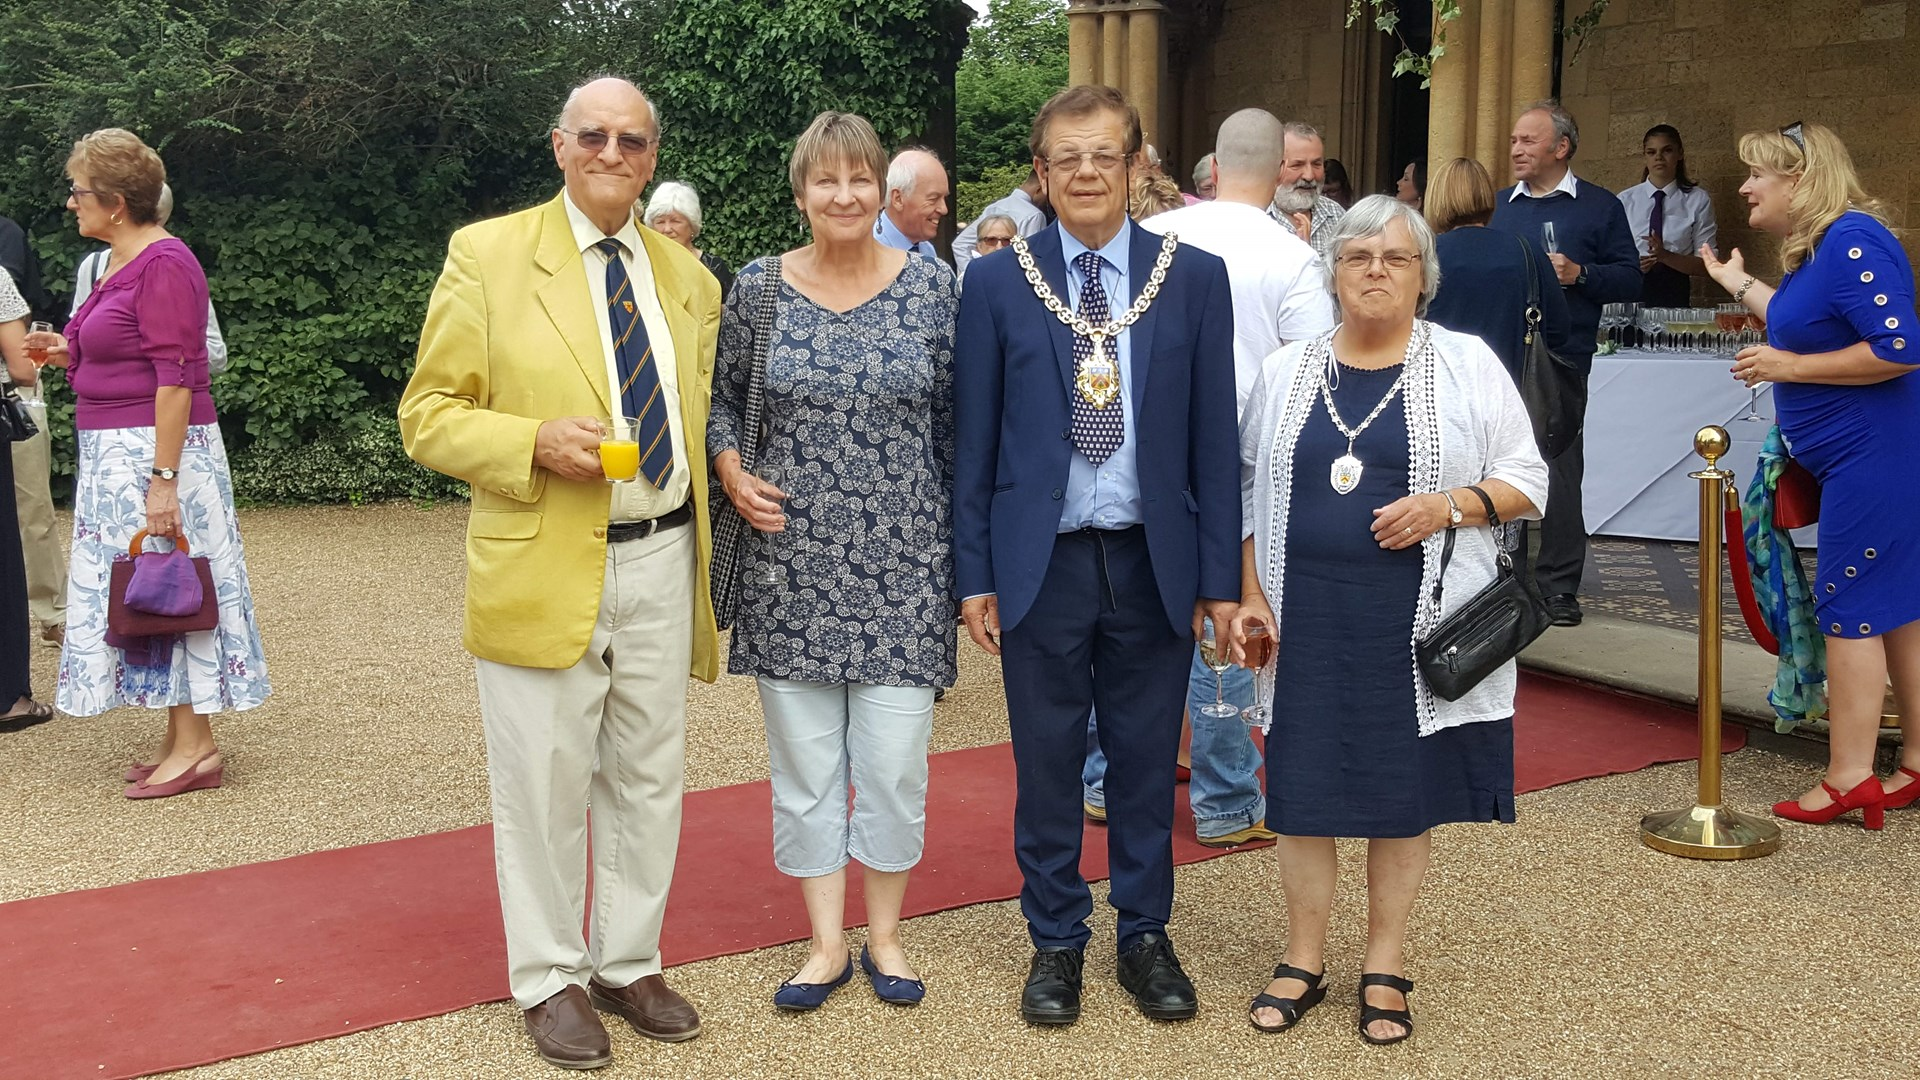 left to right Peter Worsley and Sarah Bamford, Vice Chairman and Chair, Mayor Roger Whyborn and Carole Whyborn